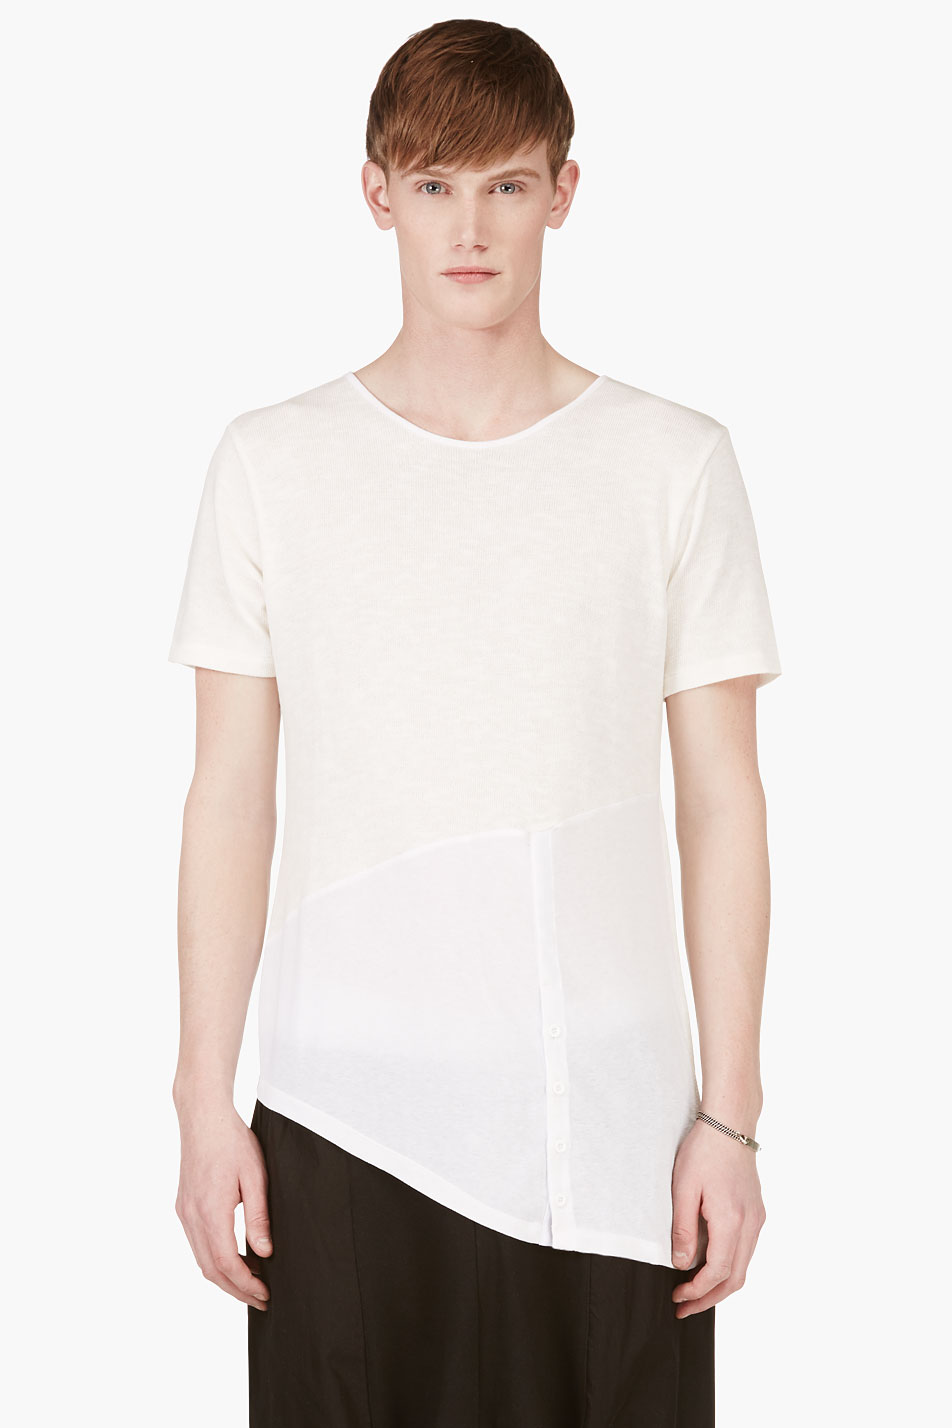 d.gnak by kang.d white knit assymetric hem t_shirt